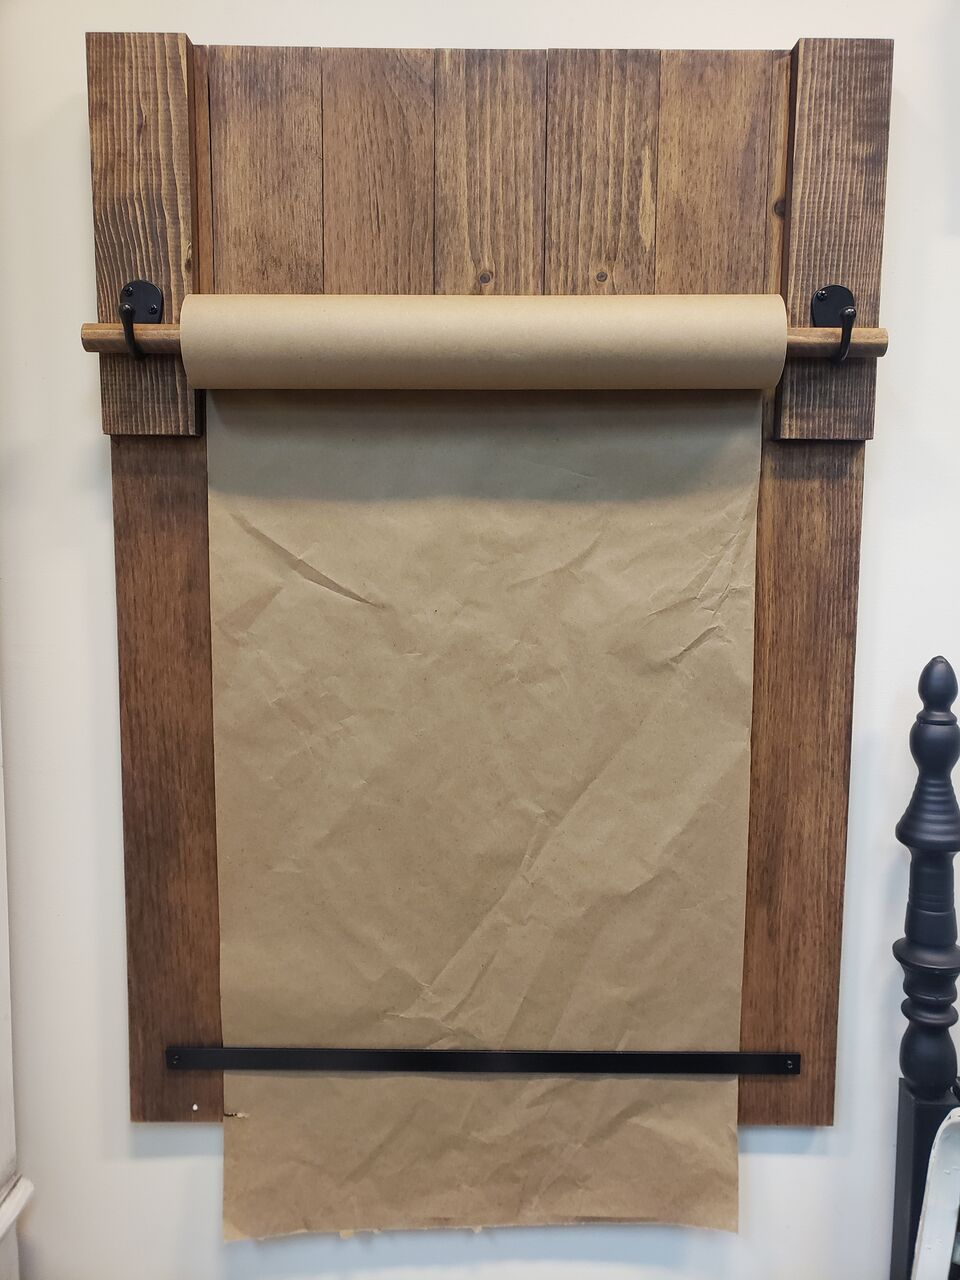 Large Wooden Paper Roll Holder Reserve a Seat Workshop Project